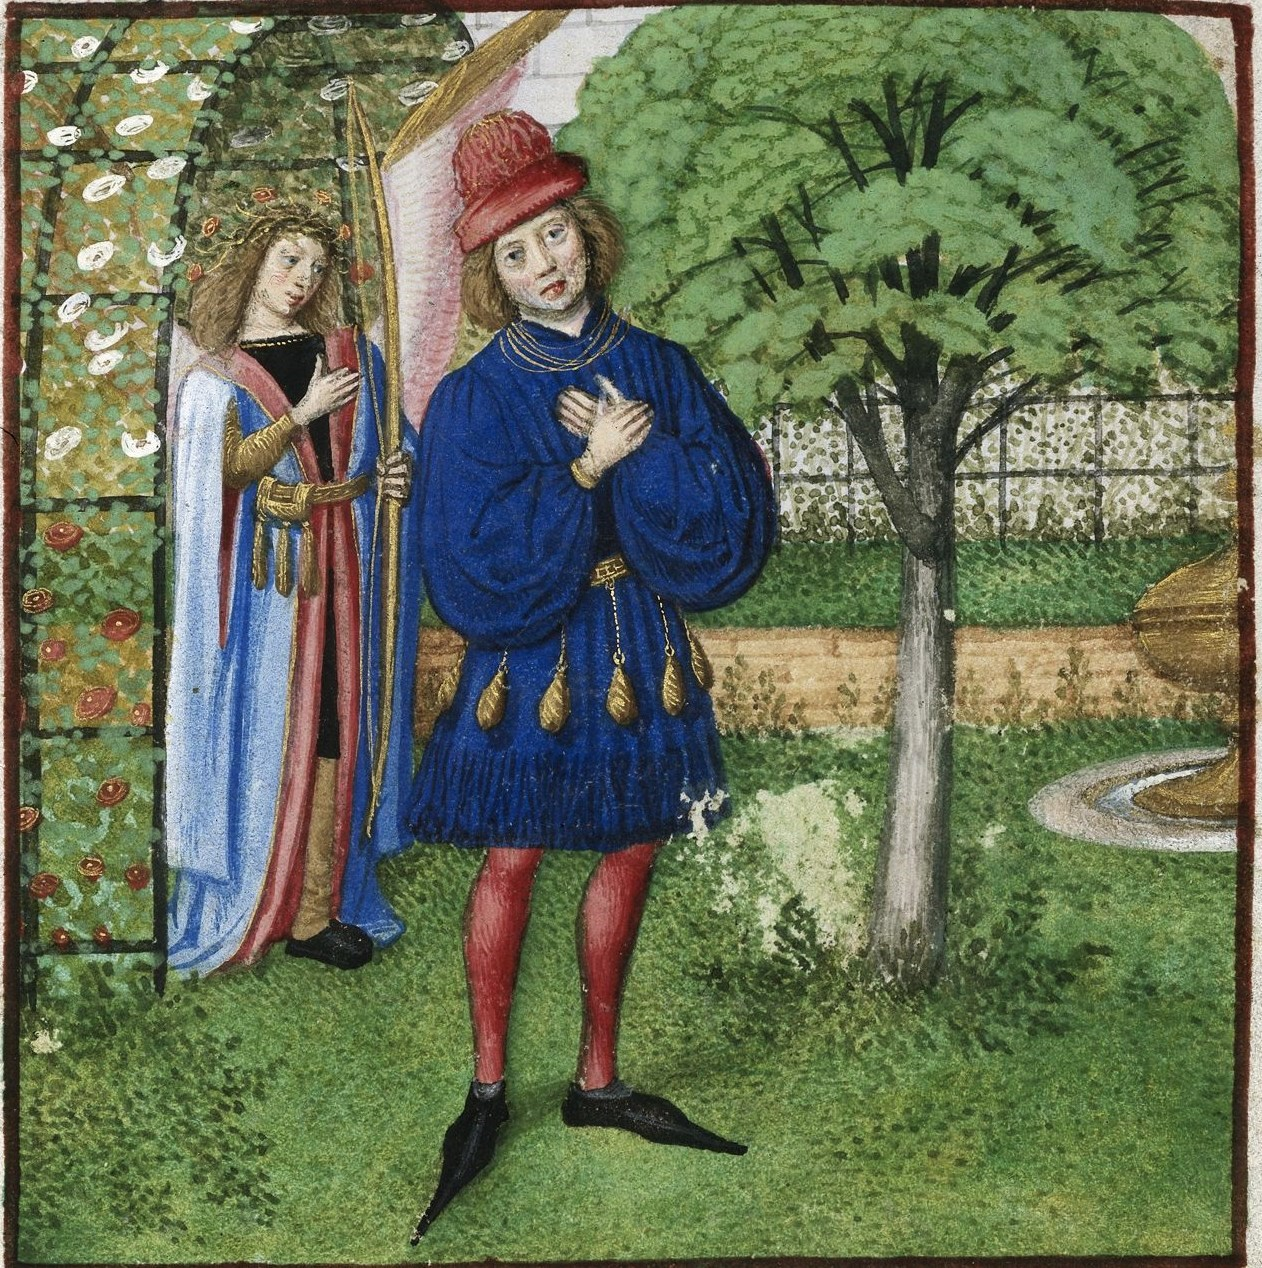 c-1487-95-artist-unknown-british-library-london-harley-4425-f.-42-amour-and-the-lover-copy.jpg